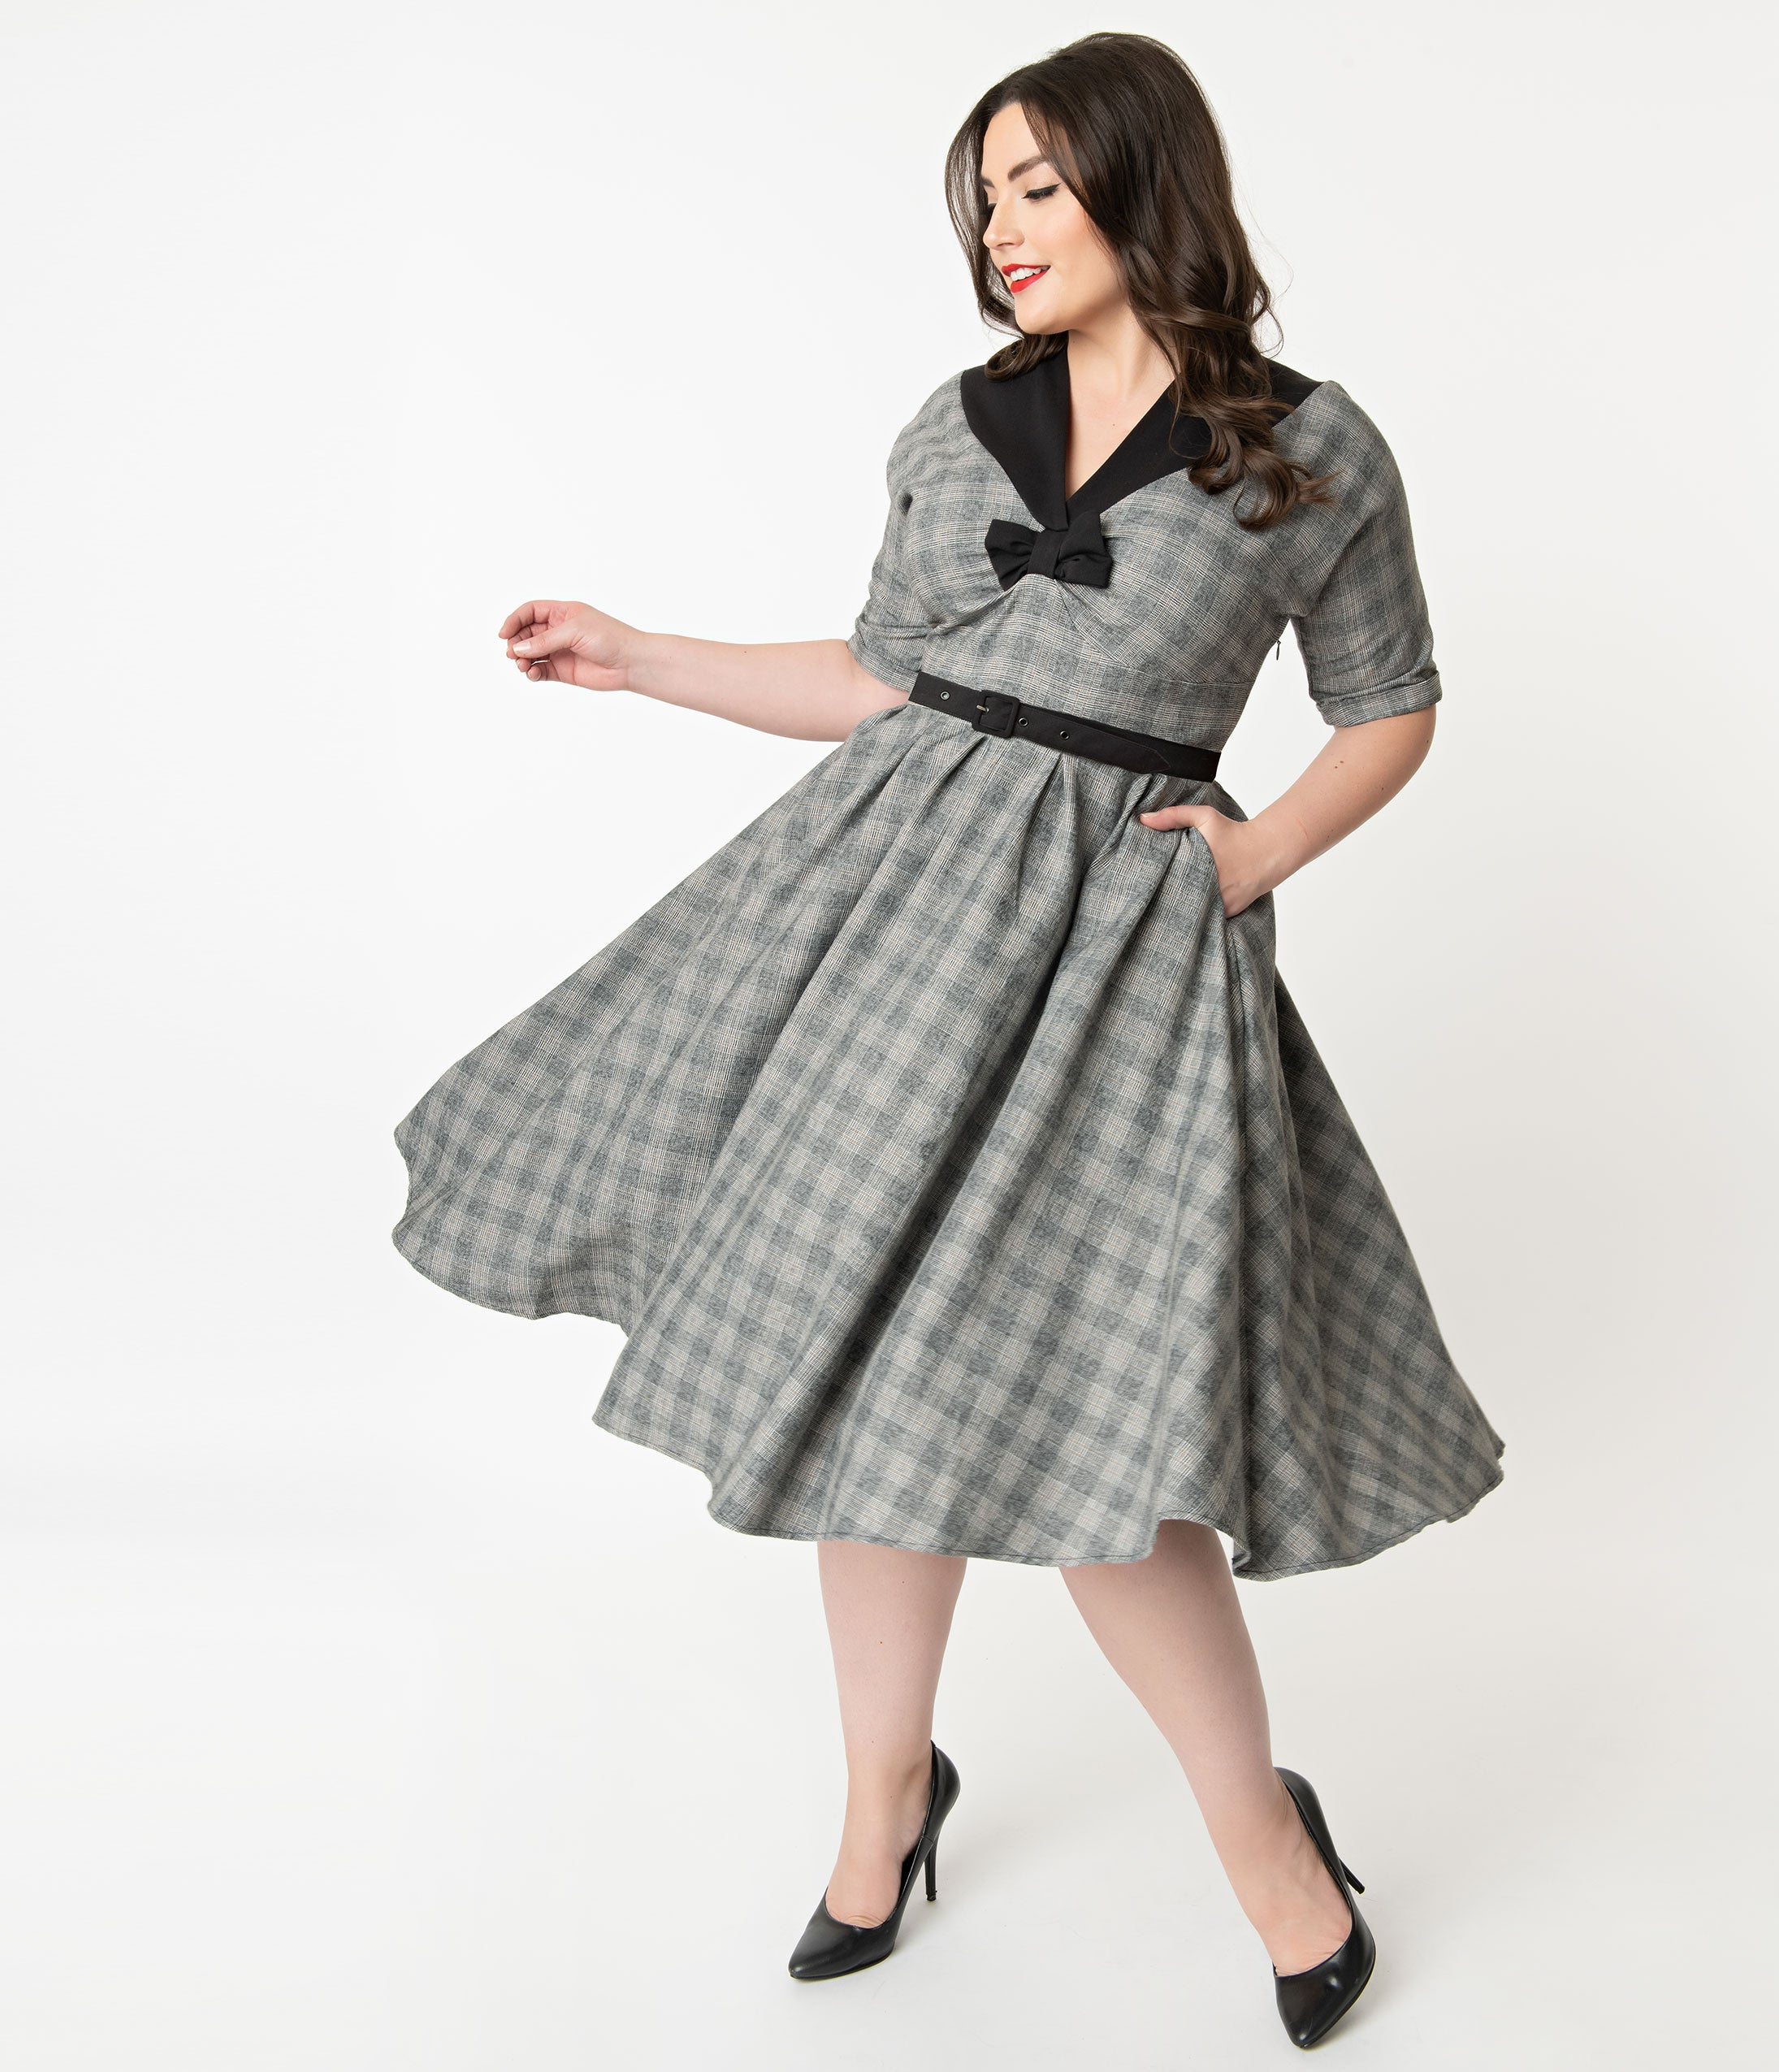 1940s Plus Size Dresses | Swing Dress, Tea Dress Miss Candyfloss Plus Size 1950S Grey Check Maeby Swing Dress $126.00 AT vintagedancer.com